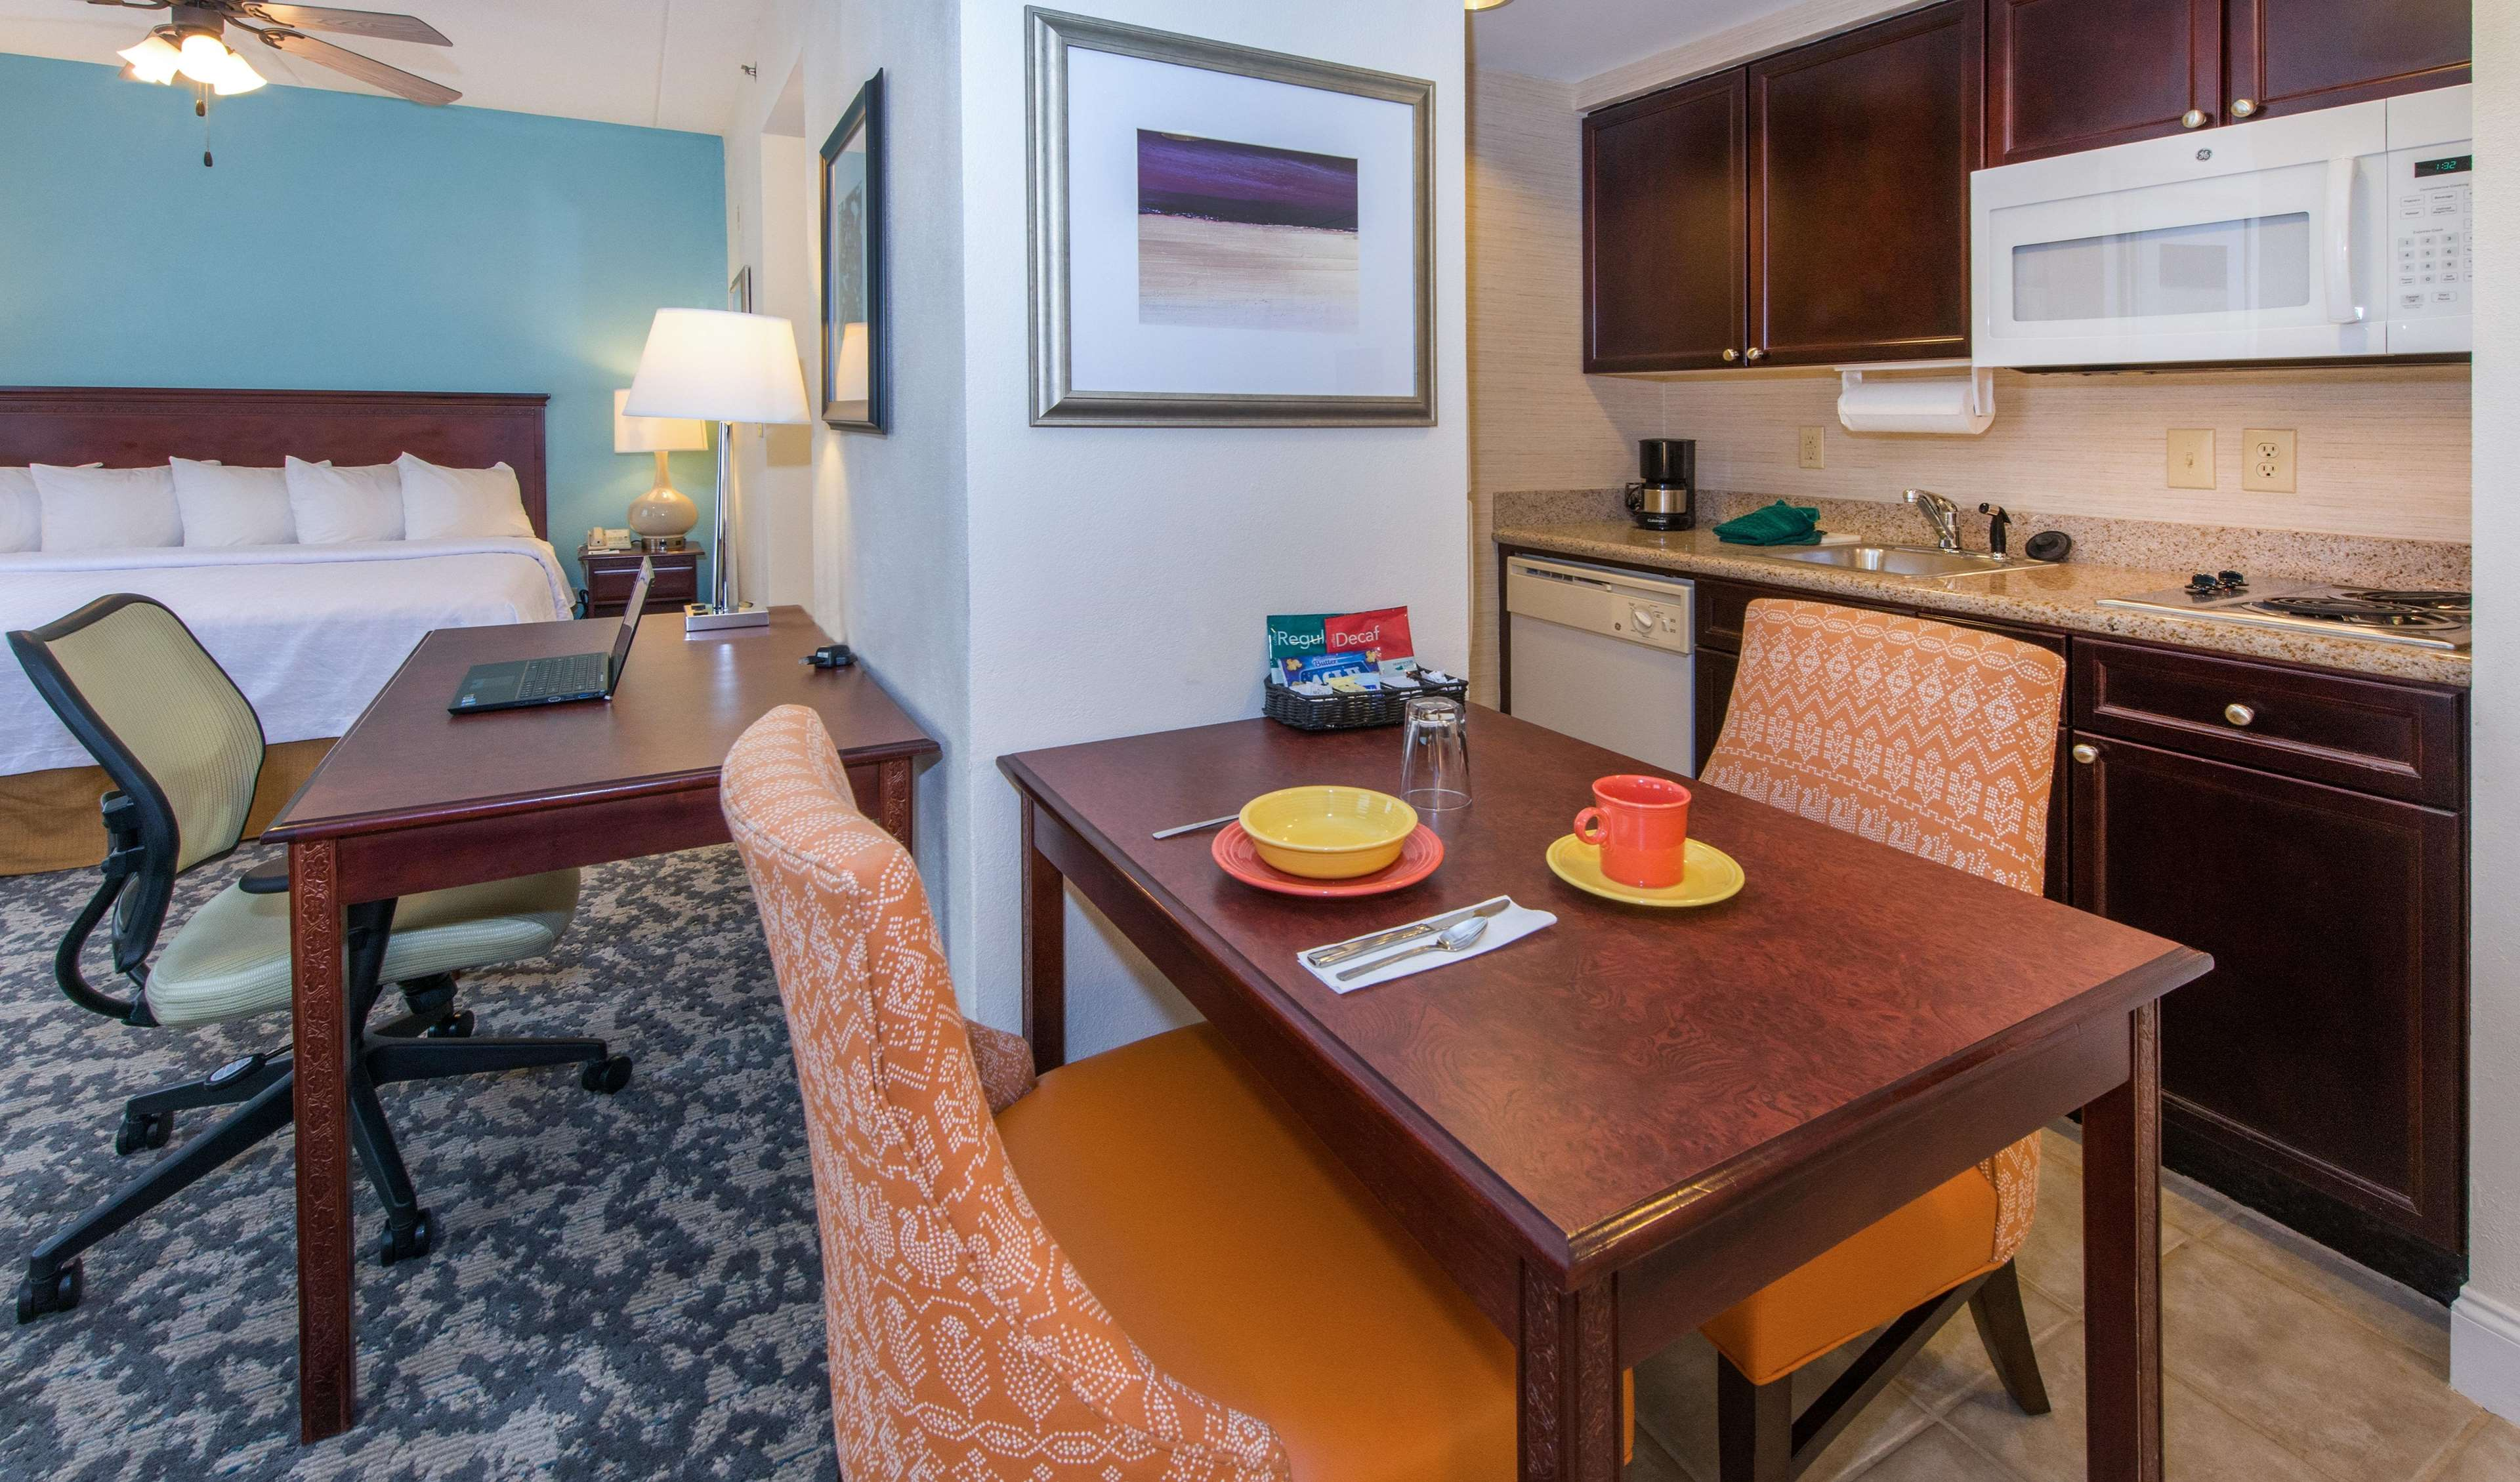 Homewood Suites by Hilton Montgomery image 18